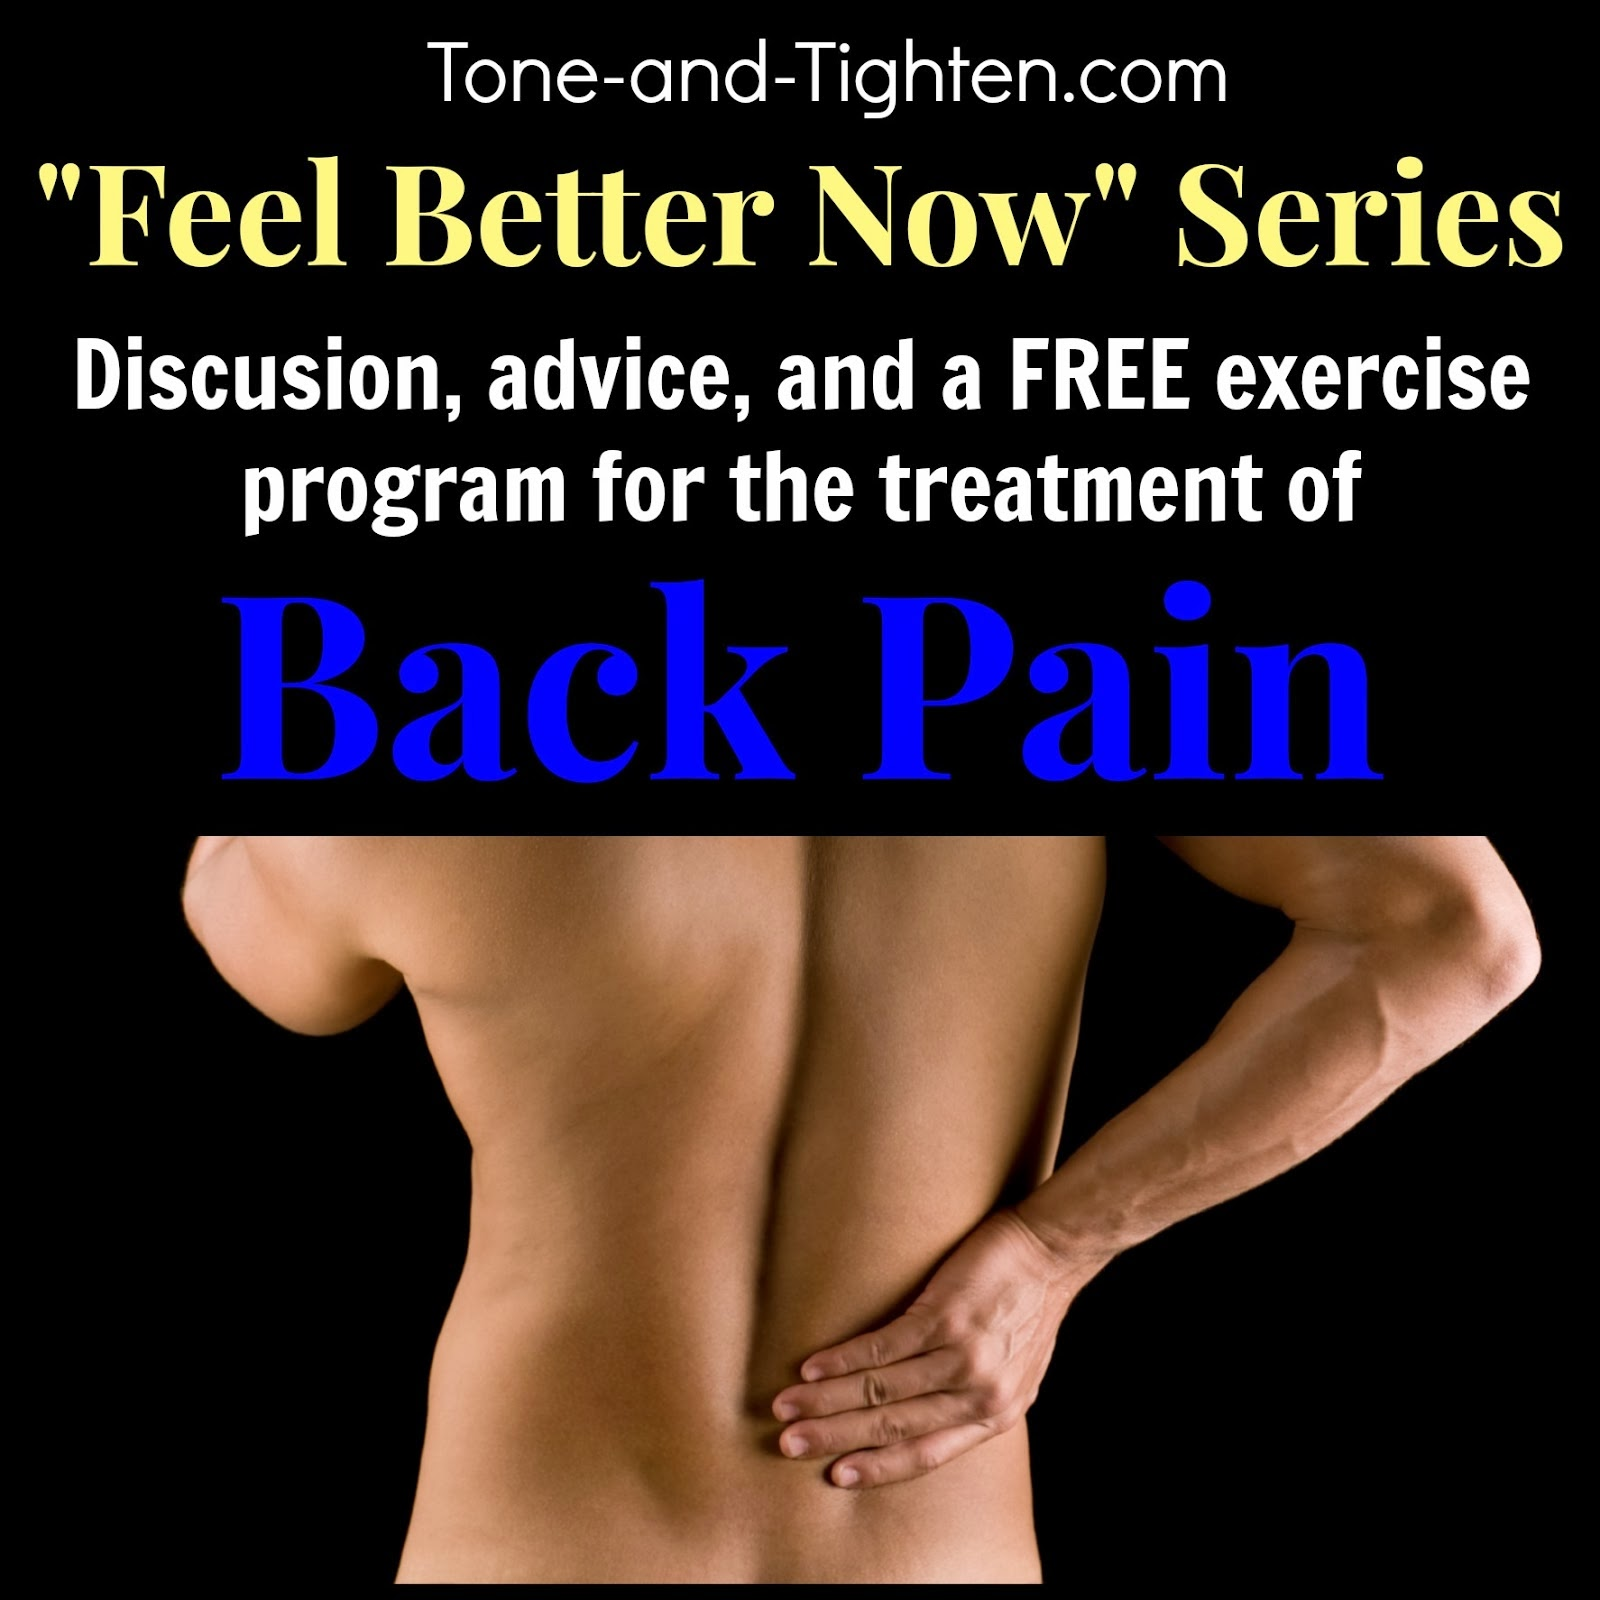 http://tone-and-tighten.com/2014/02/new-feel-better-now-series-how-to-treat-low-back-pain.html